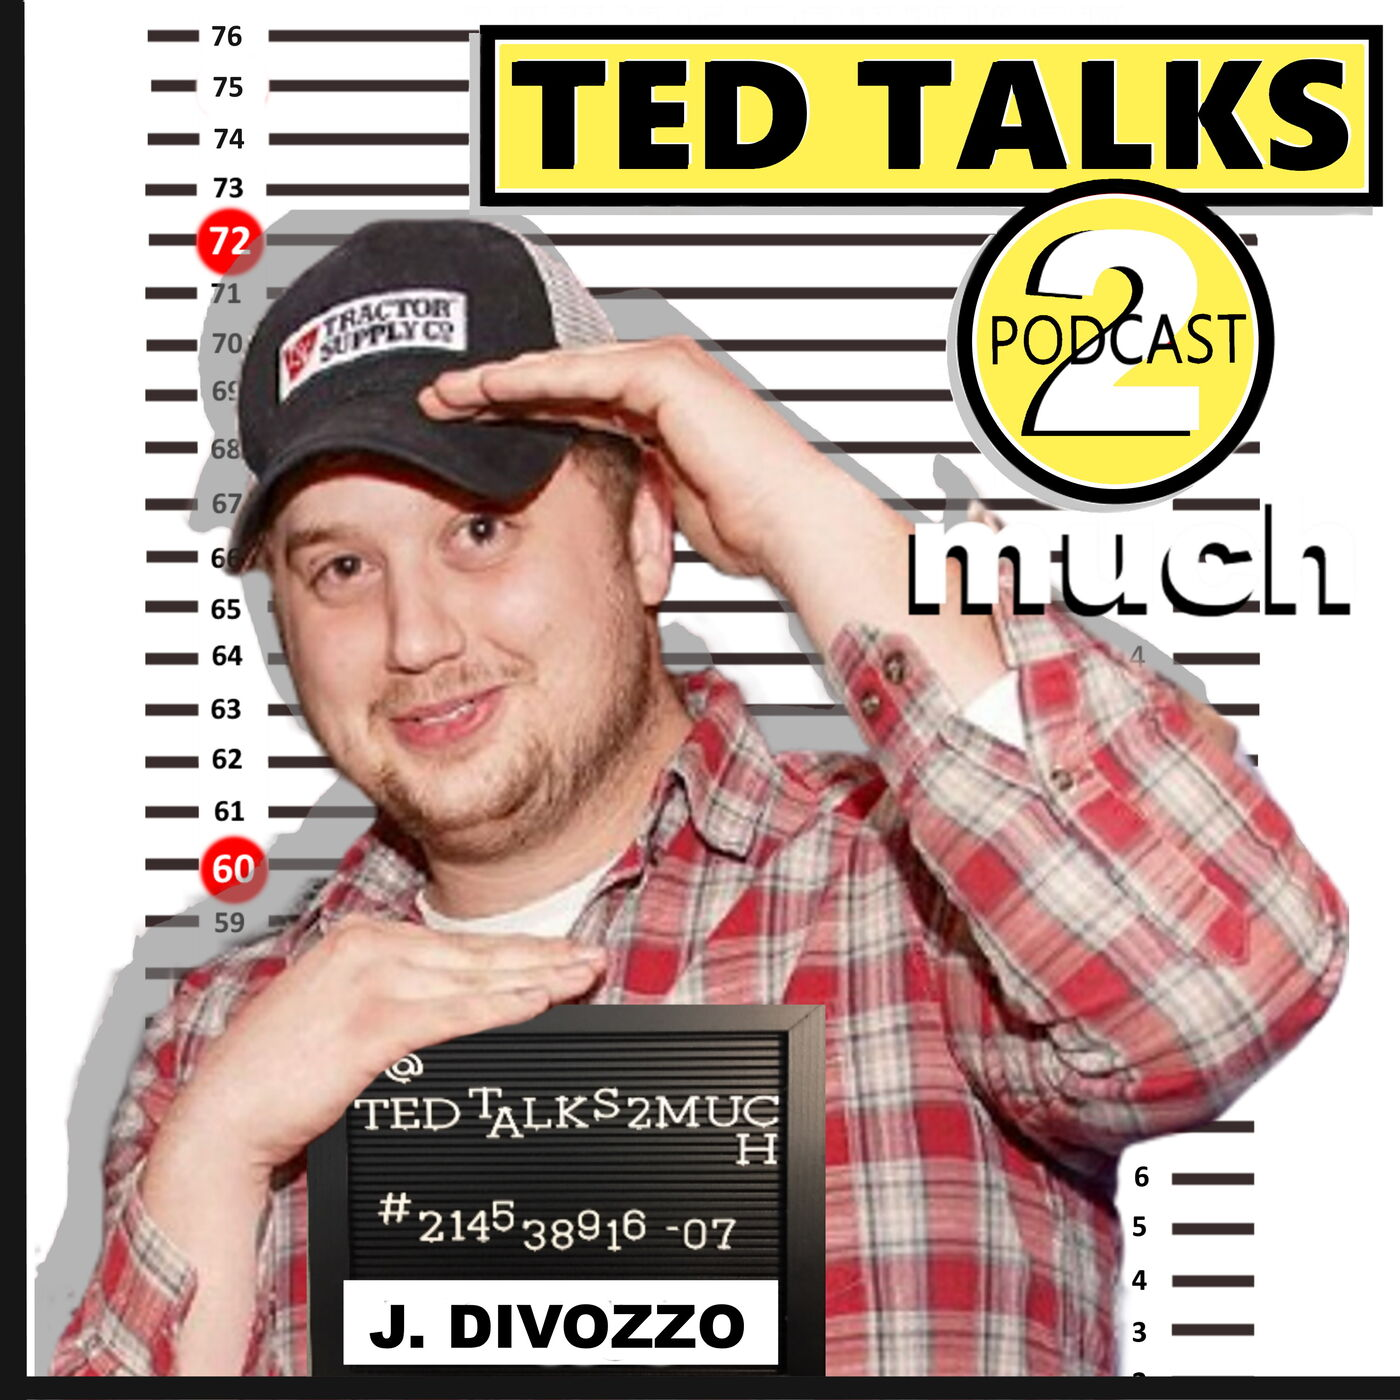 TED TALKS 2 Justin Divozzo... (Way Way 2 Much) about Racism, AI and Spirtuality